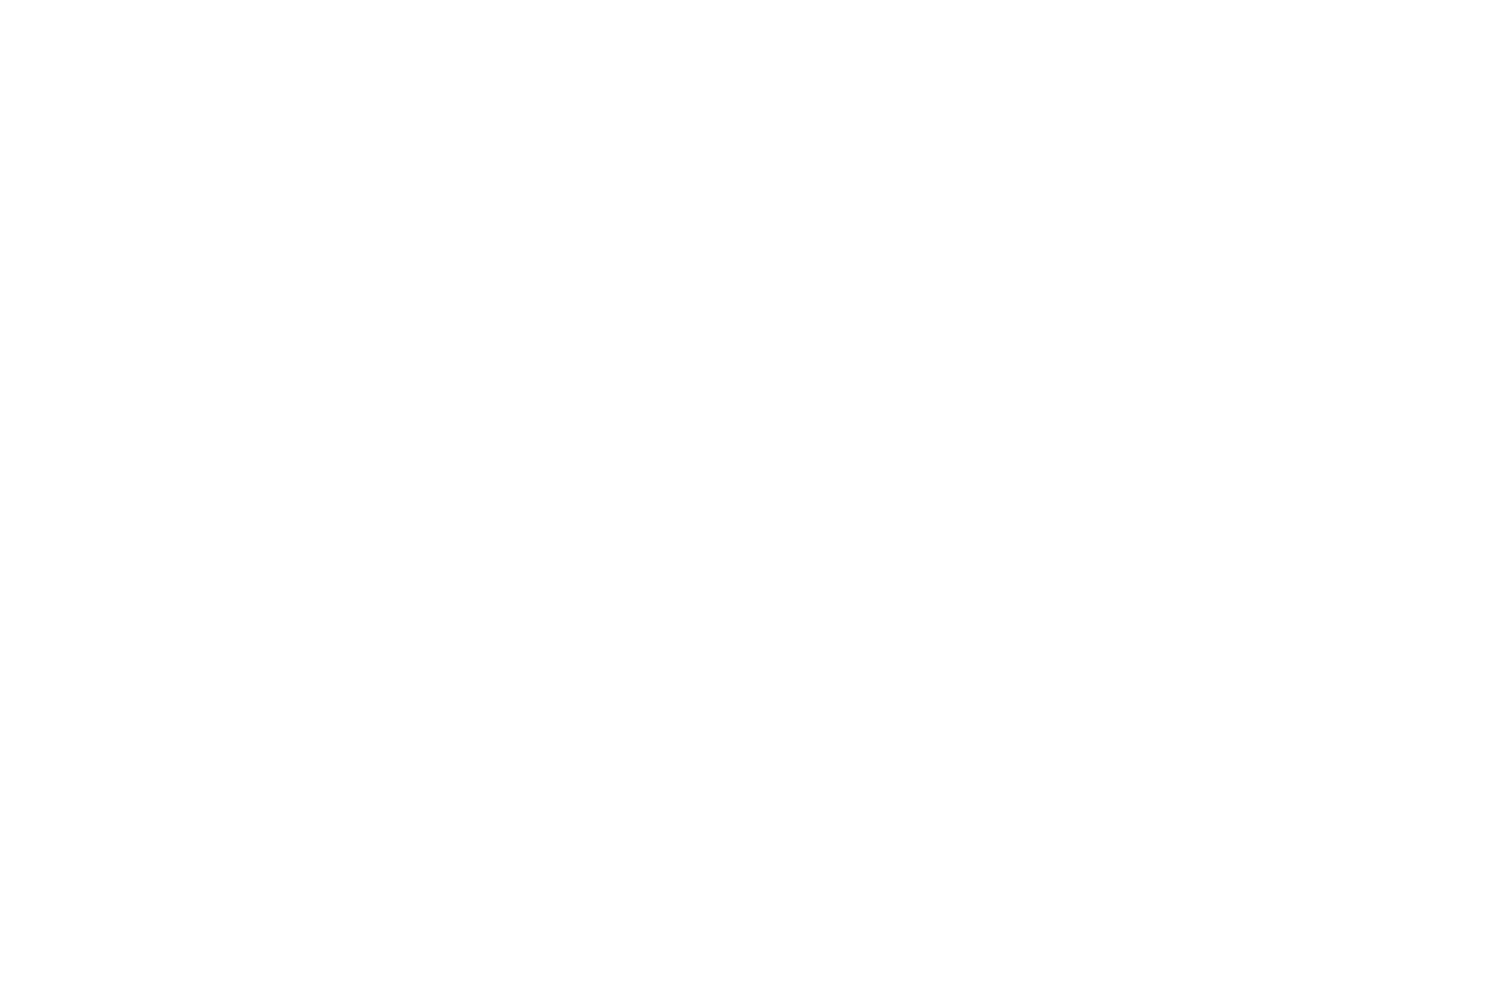 Third Wave Bioactives